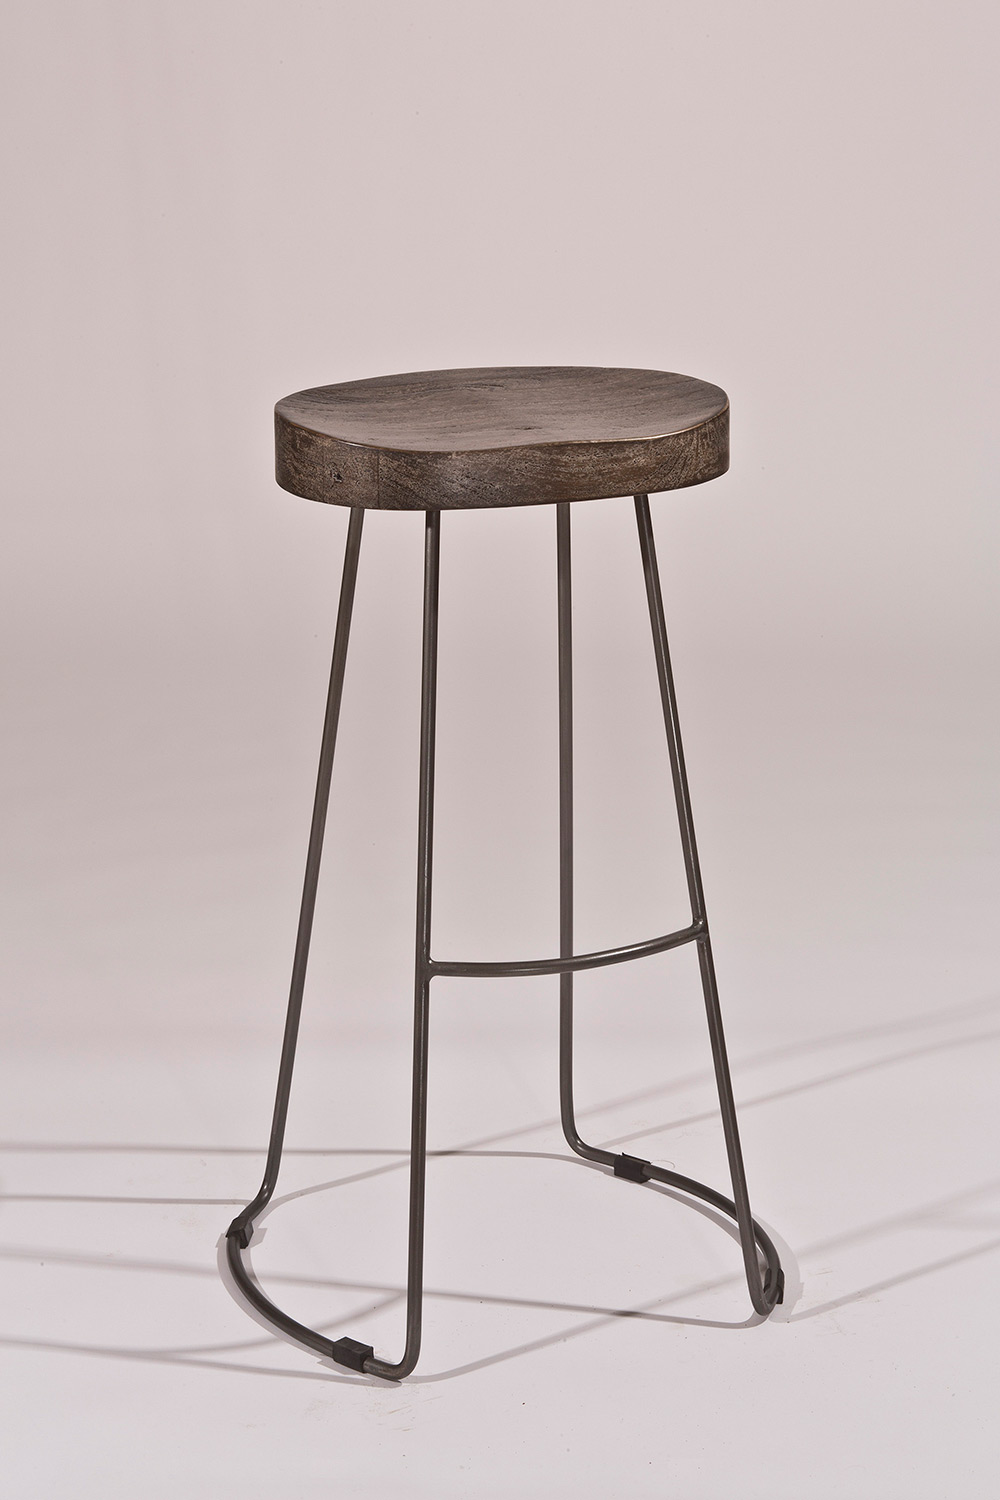 Hillsdale Hobbs Tractor Non-Swivel Counter Stool - Distressed Black/Pewter